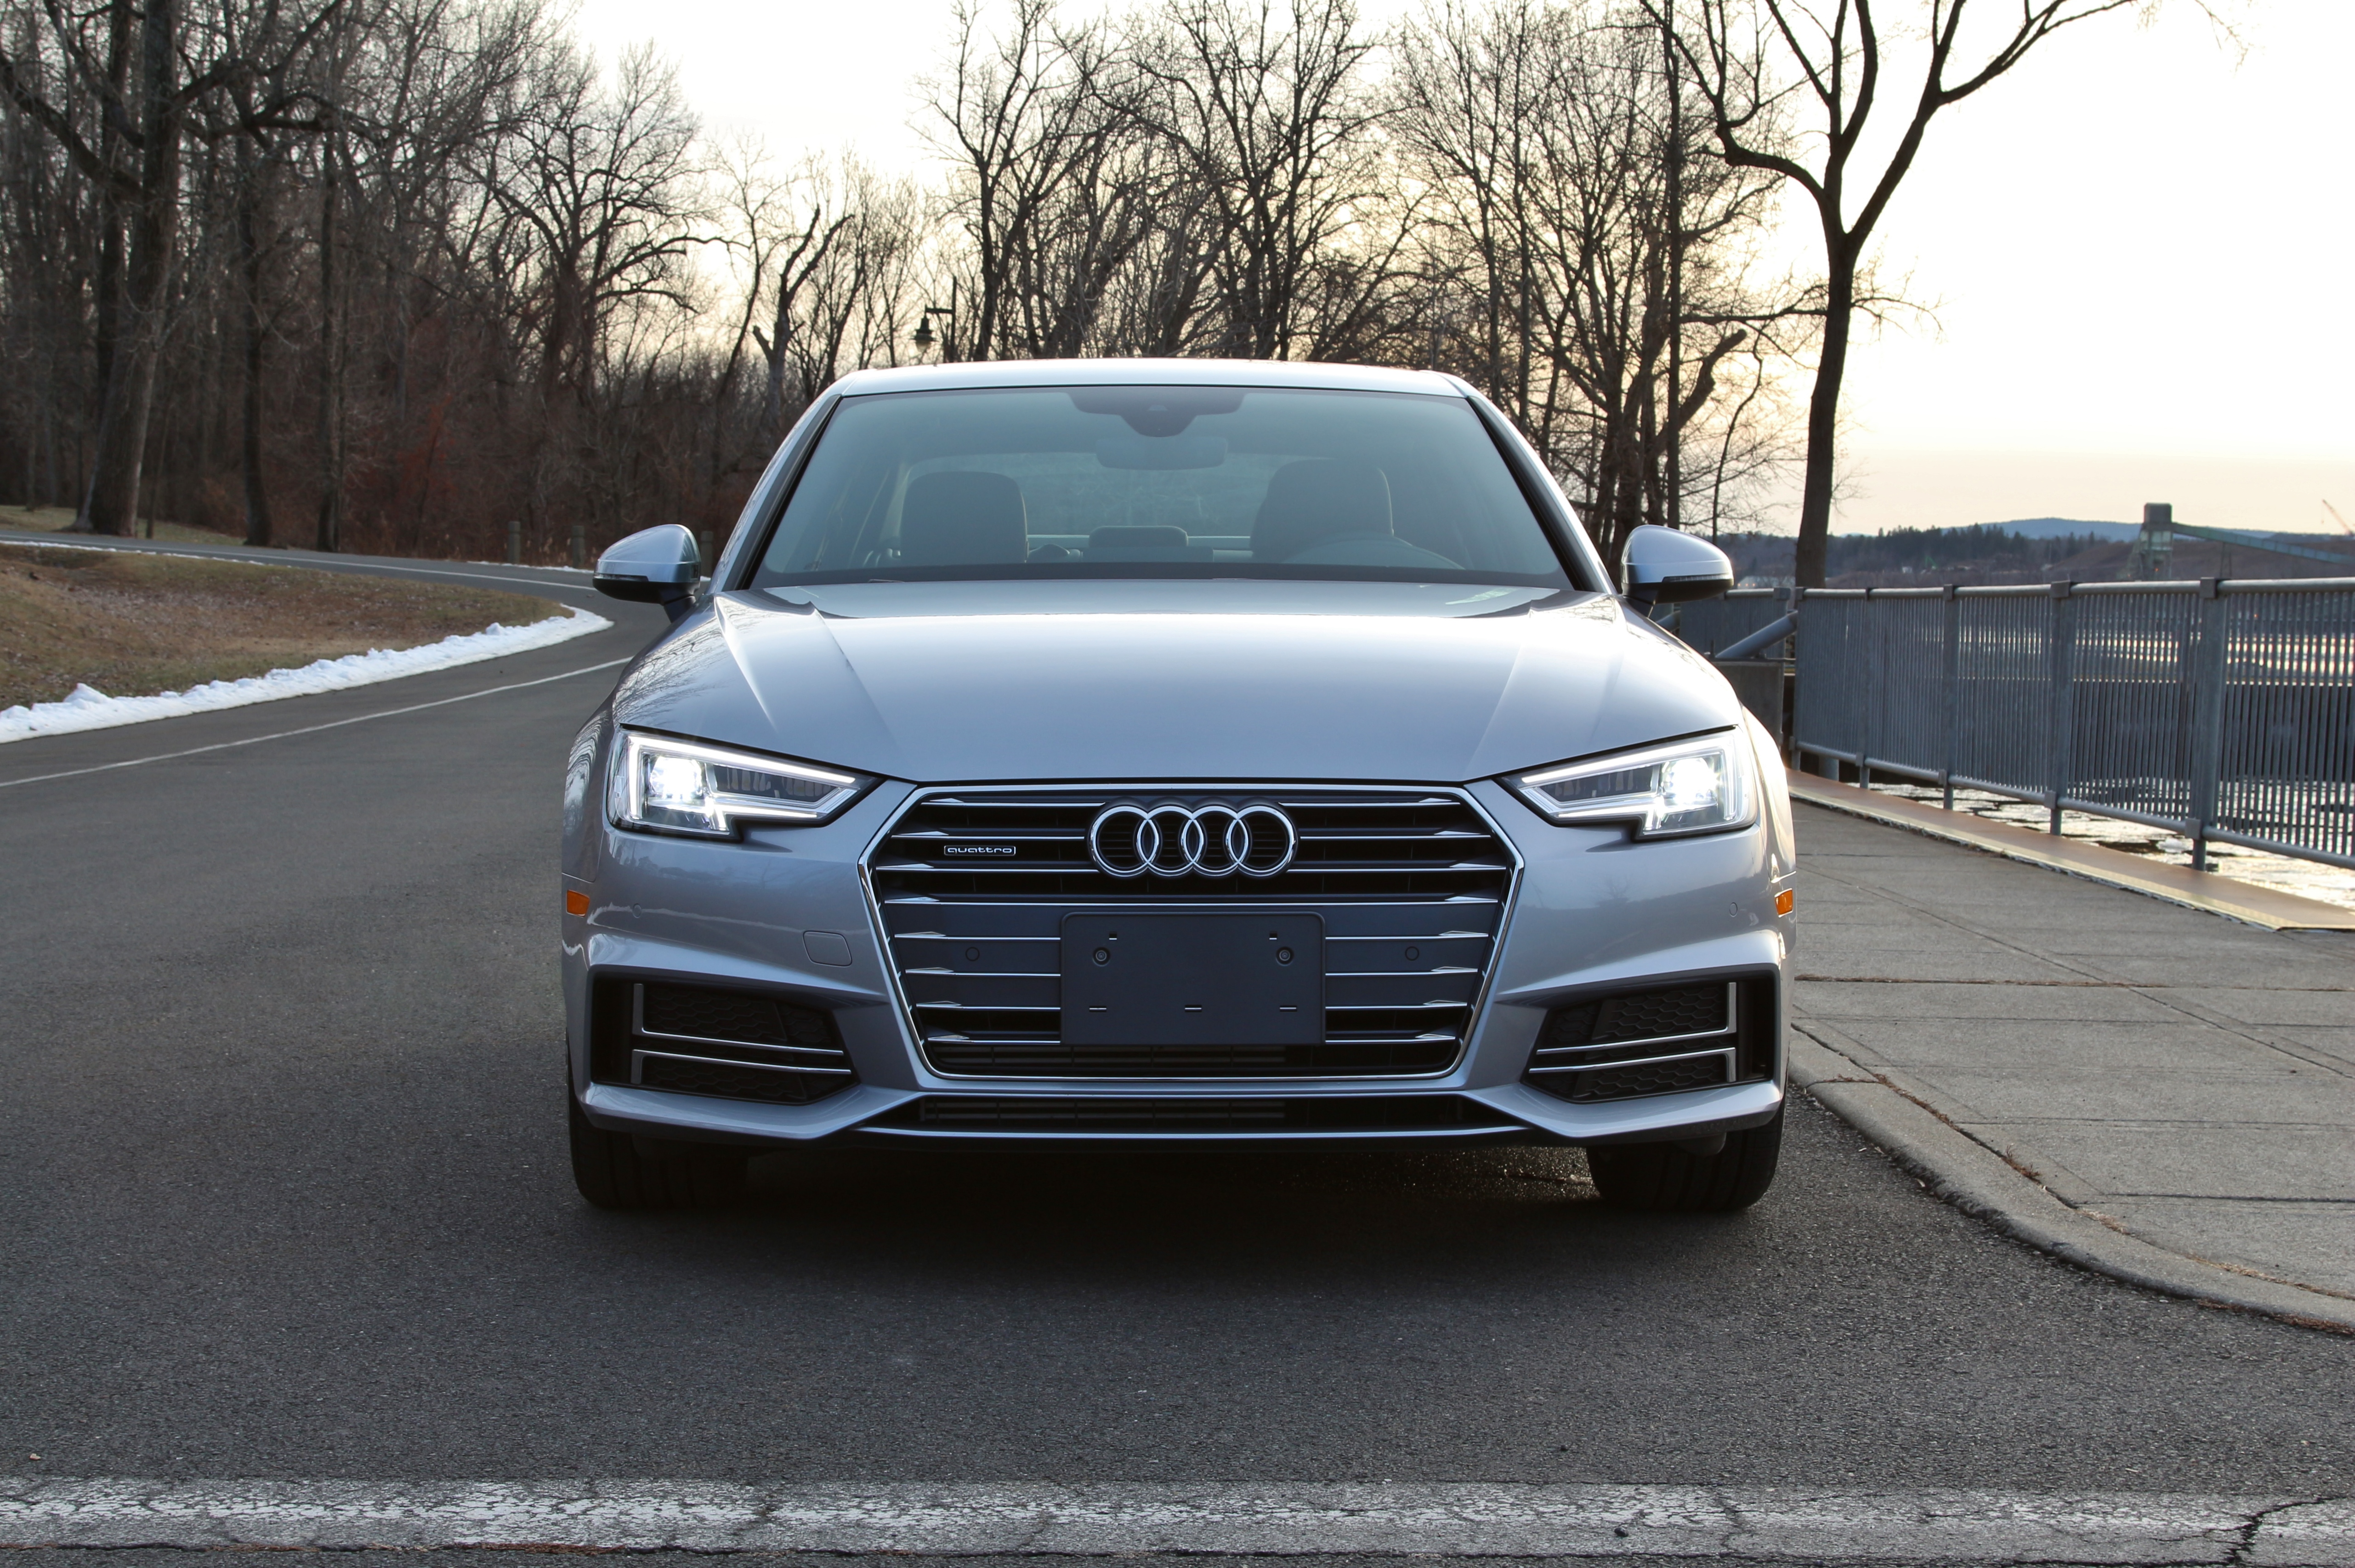 2018 audi a4 silver. the a4 looks much better in person than it does photos. it\u0027s as if designers wrapped previous generation a garbage bag and made run laps. 2018 audi silver